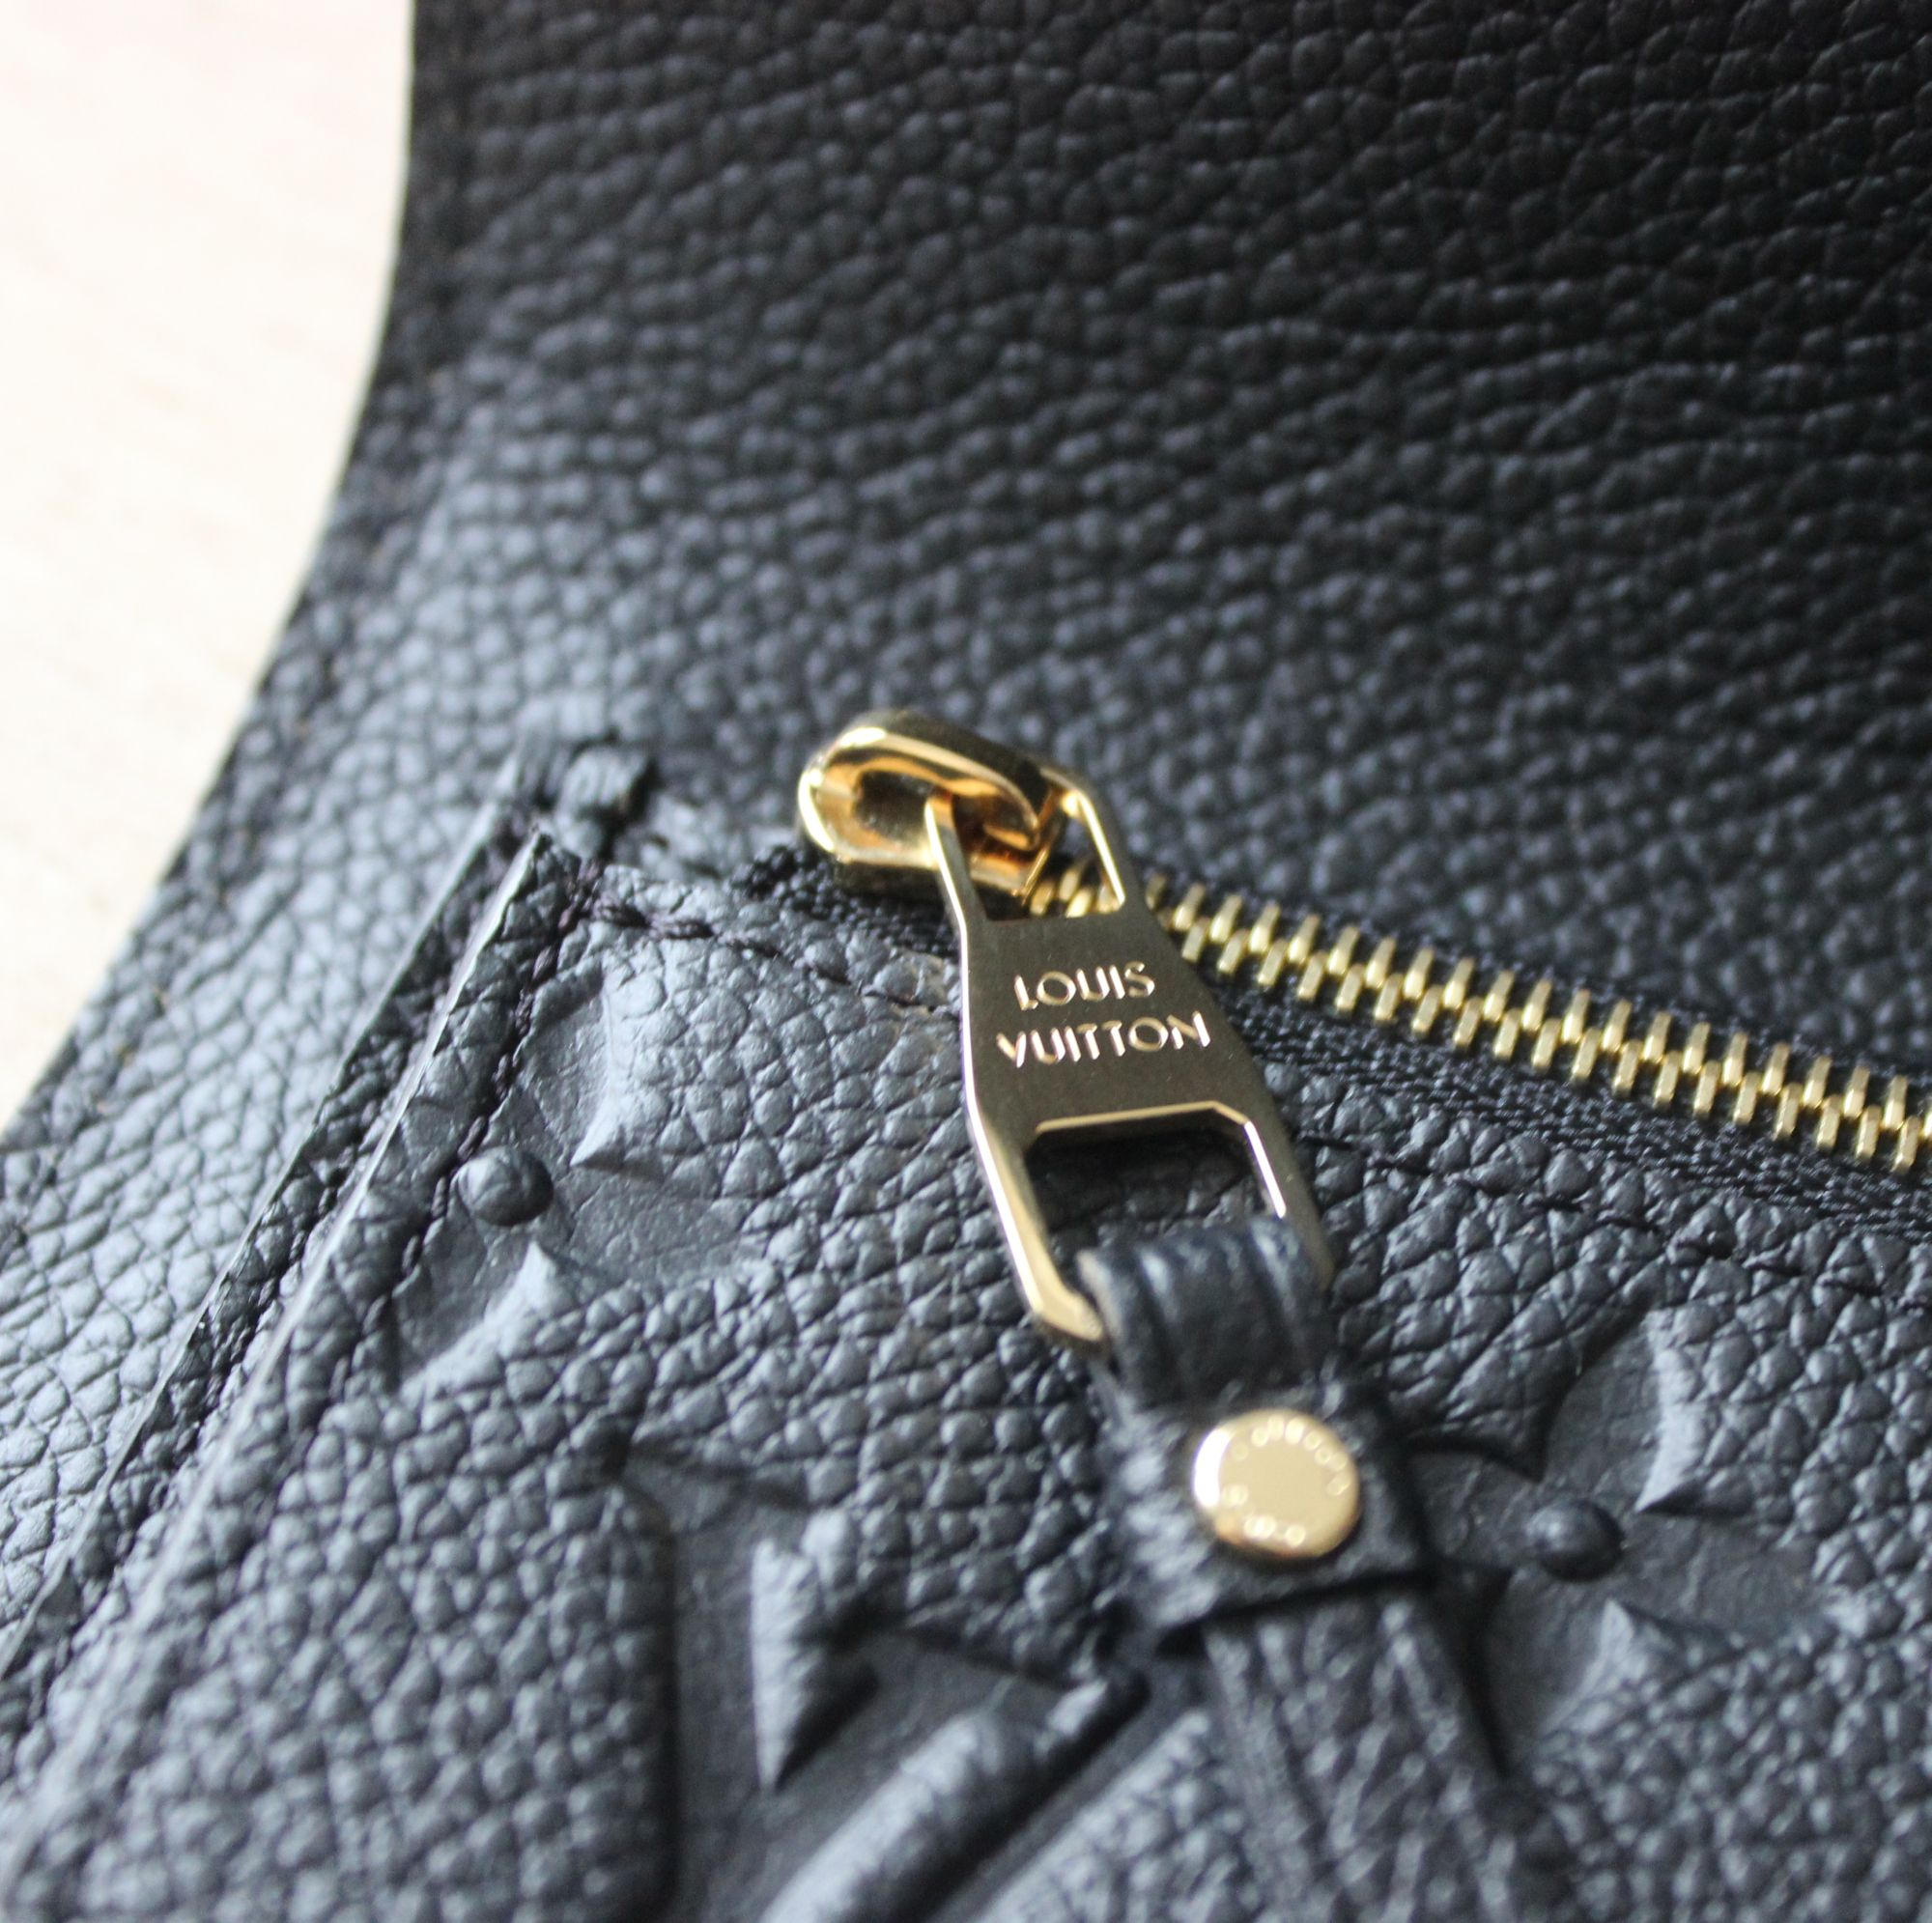 LV Compact Curieuse Wallet in Monogram Empreinte Leather 2